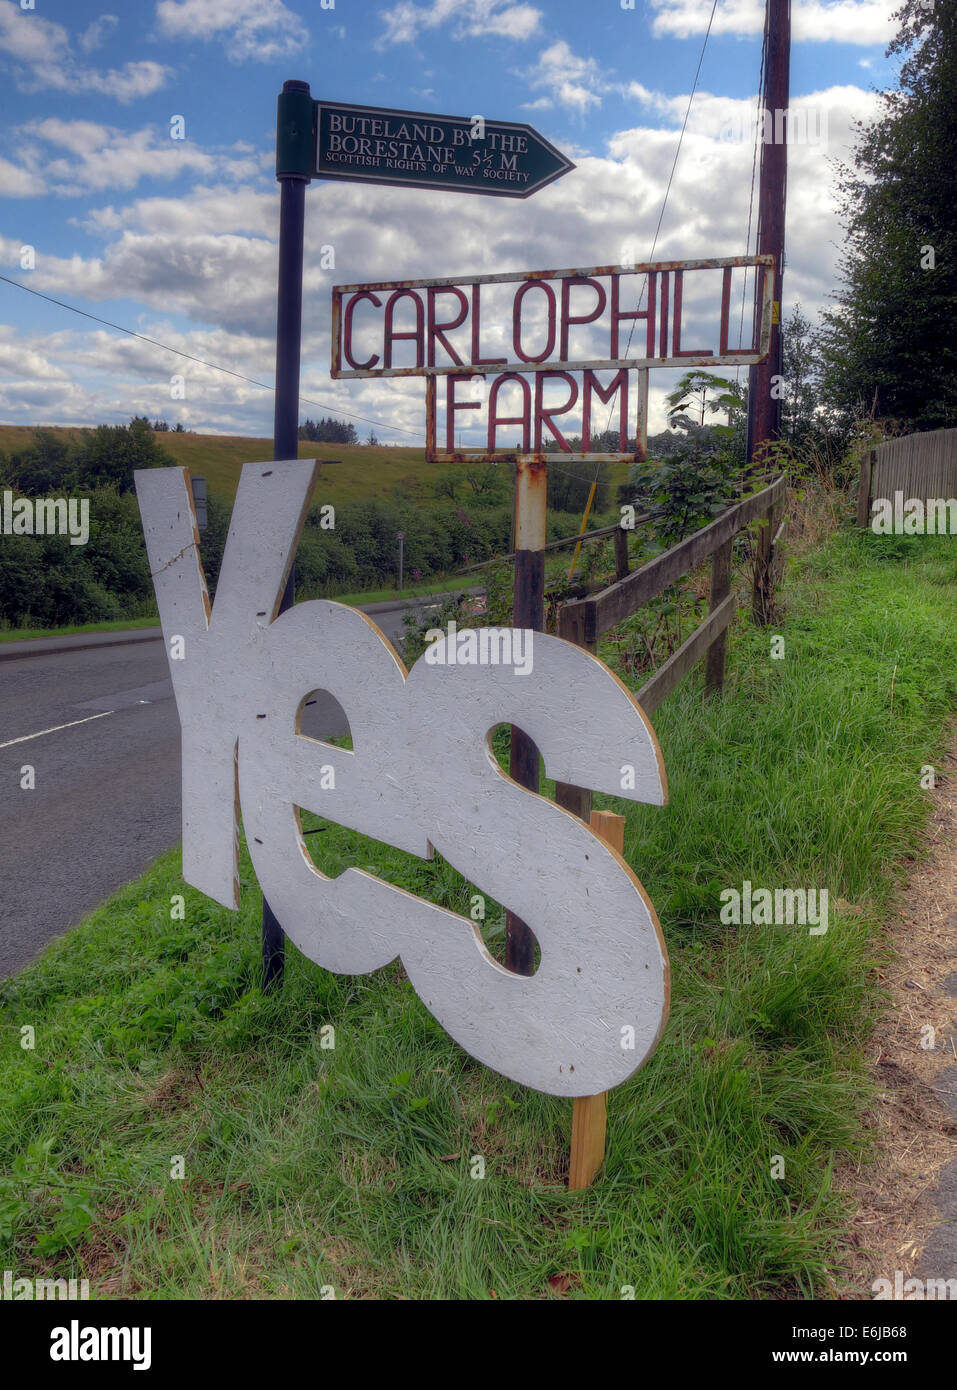 Yes to Scottish independence sign at Carlophill farm, Carlops, Scottish Borders, Scotland September 2014 Stock Photo